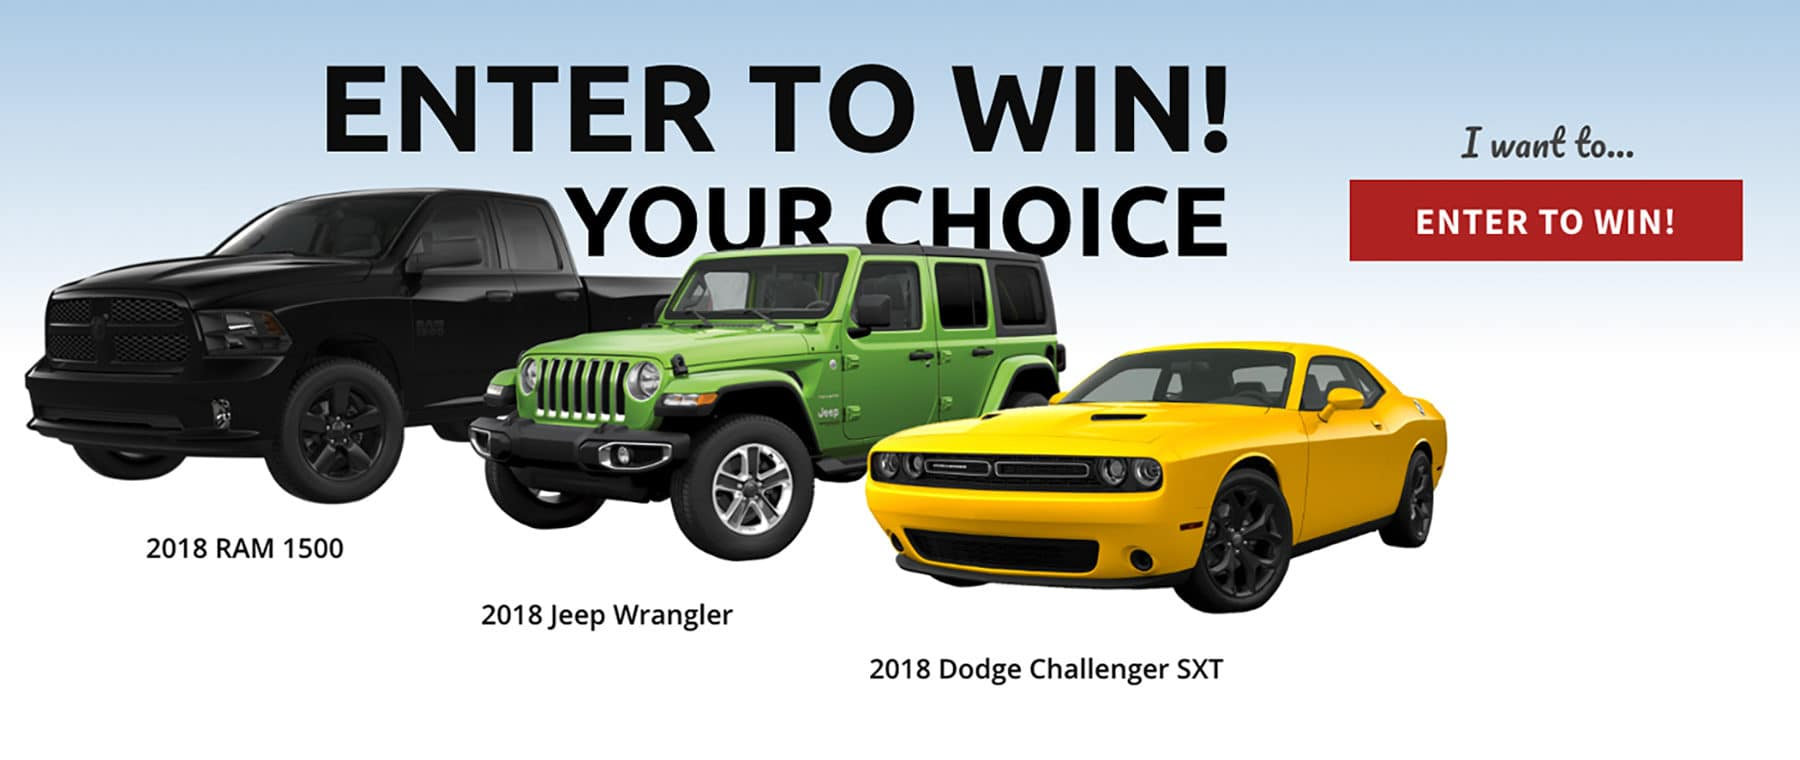 Welcome To Cape Coral Chrysler Dodge Jeep Ram